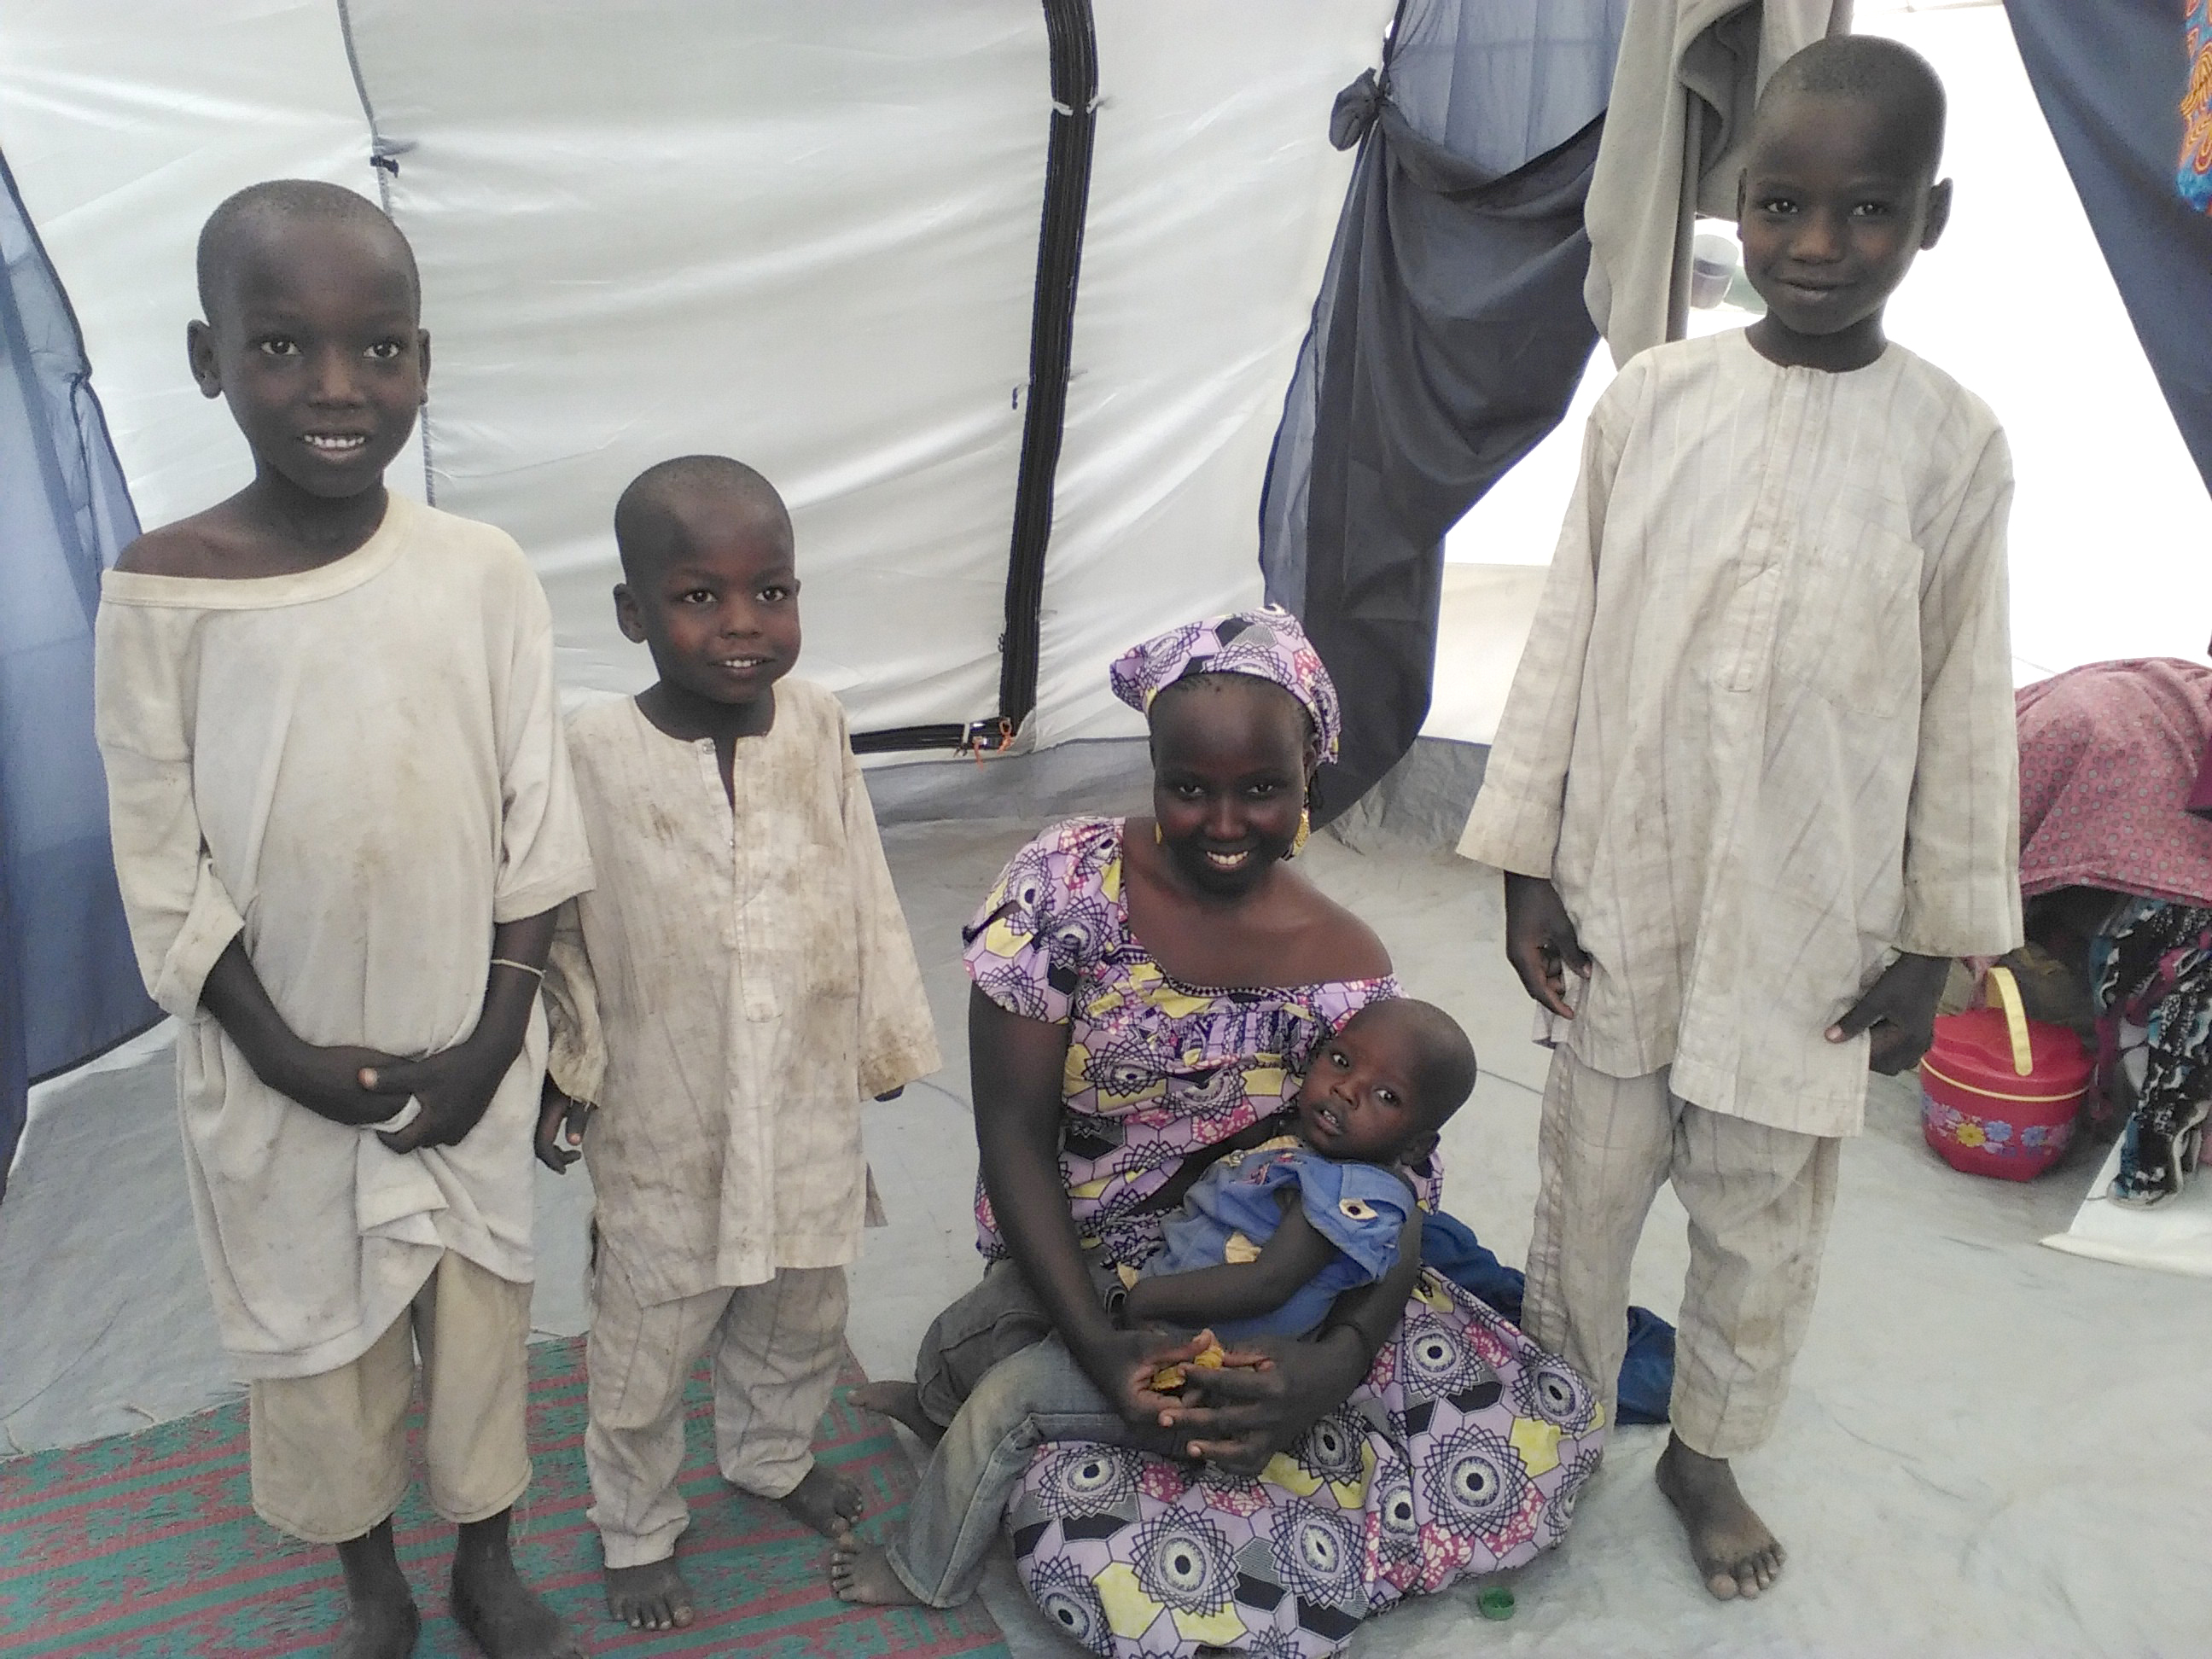 Mode takes care of her four children at a refugee camp in Cameroon